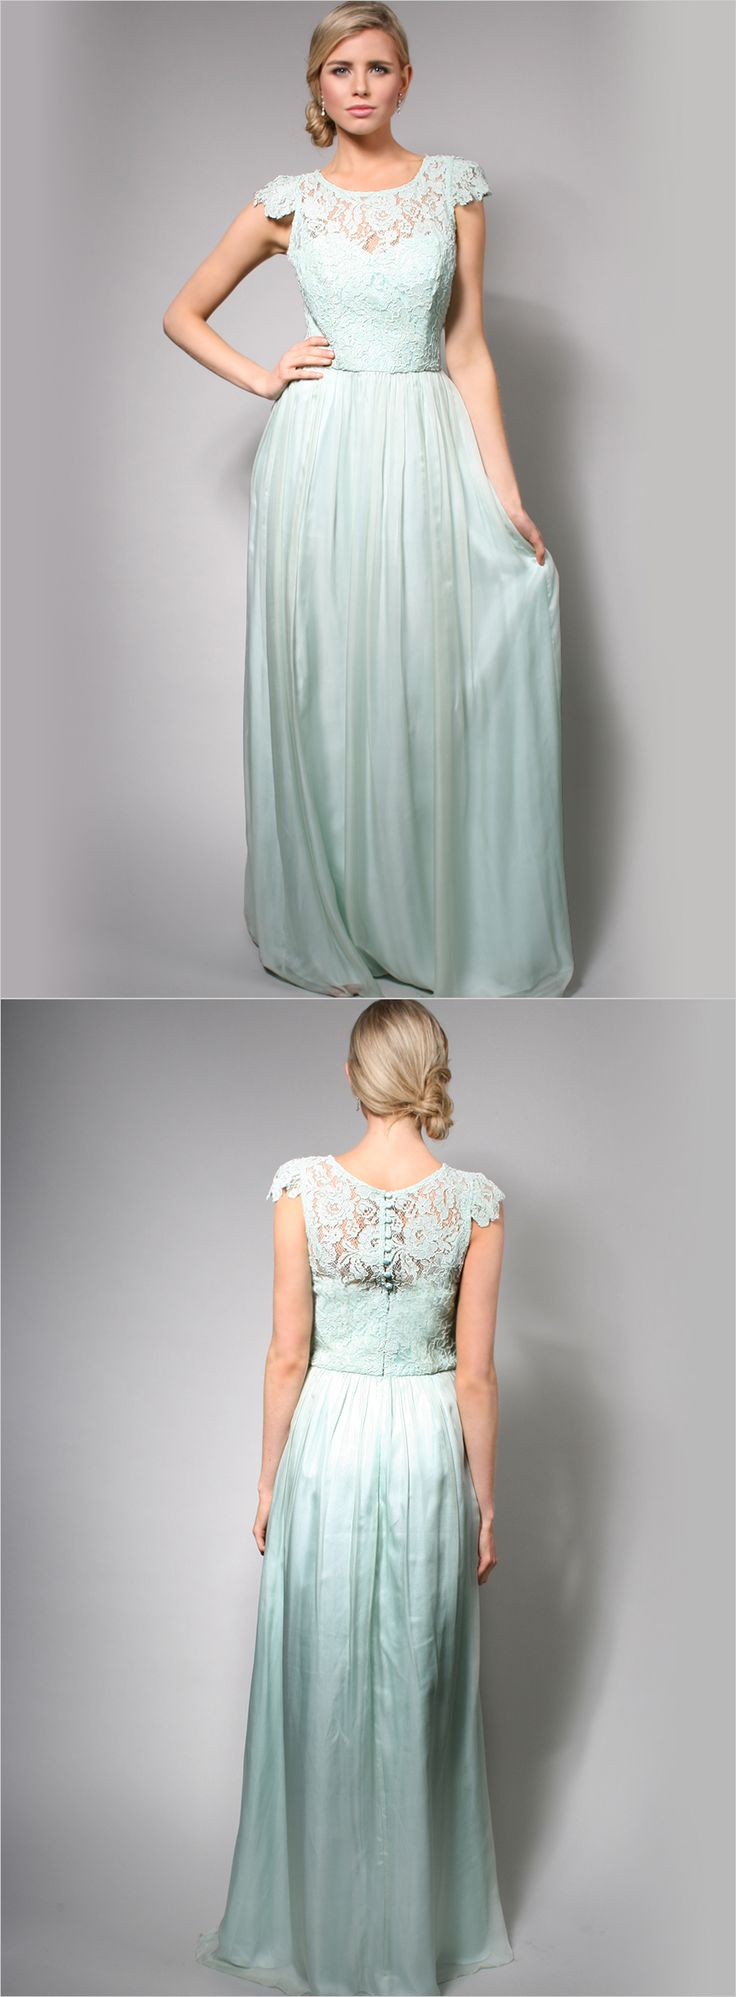 How tempting does this stunning mint wedding gown make it to go for a non traditional wedding gown? White Runway has it all! http://whiterunway.com.au/